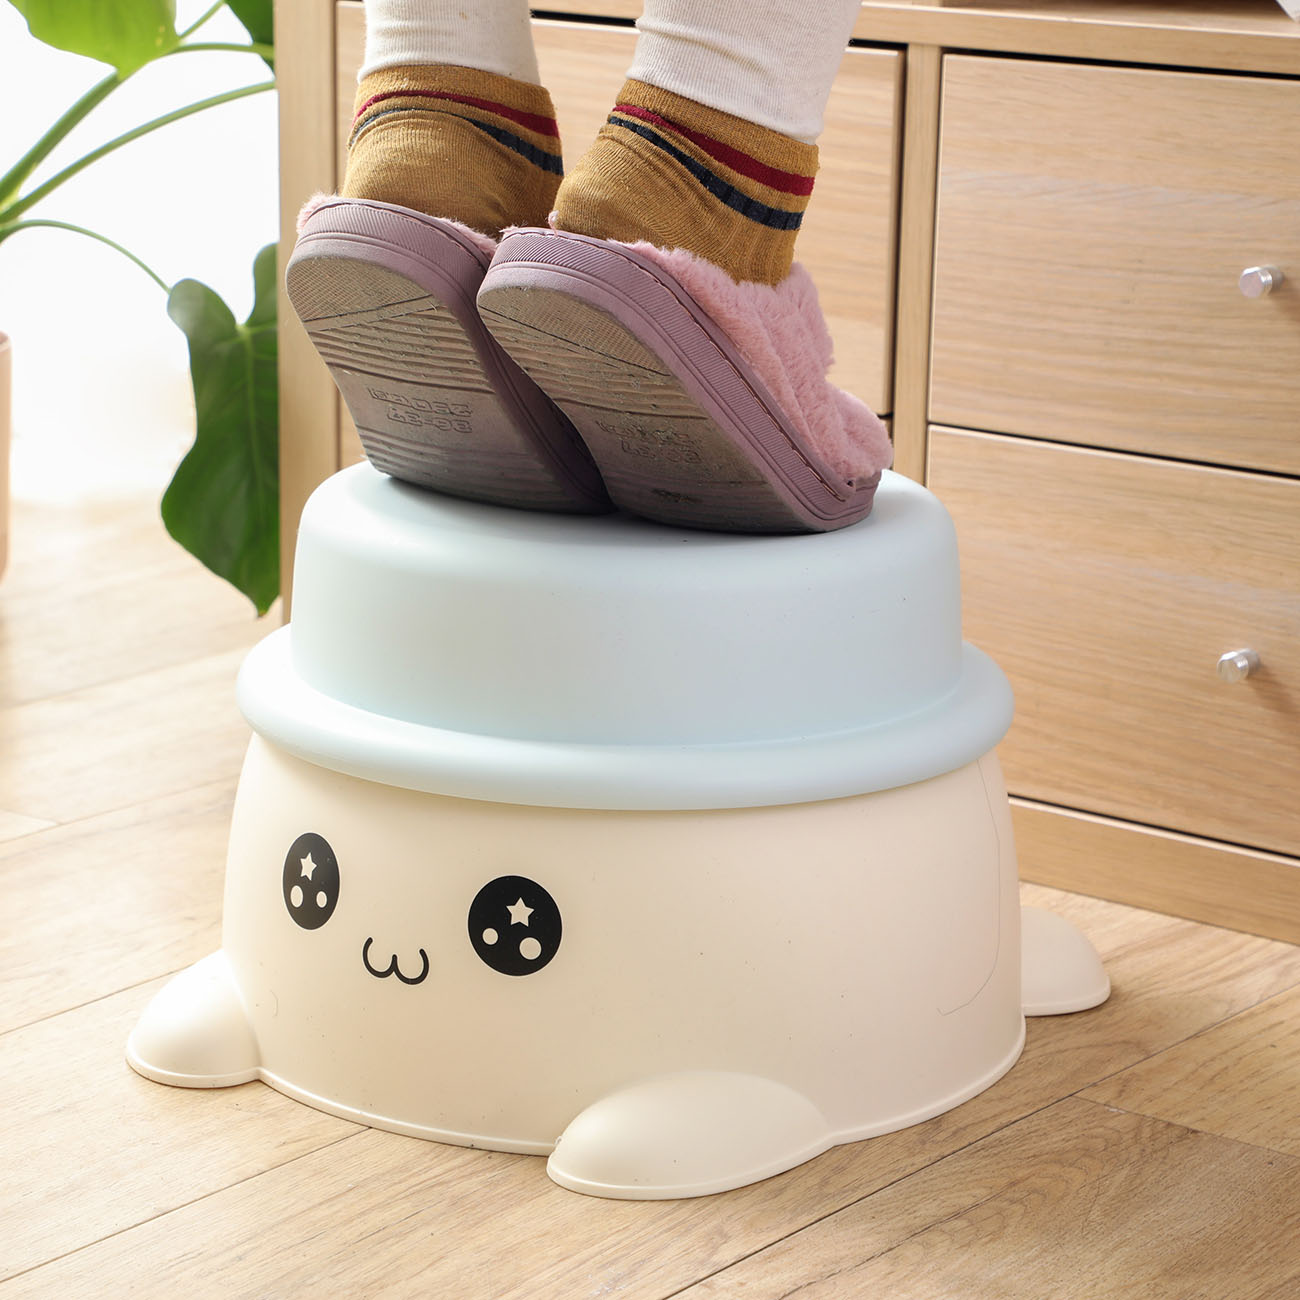 Carton Kids Sitting Stool Cute Plastic Storage Stools Living Room Change Shoes Beach Home Furniture